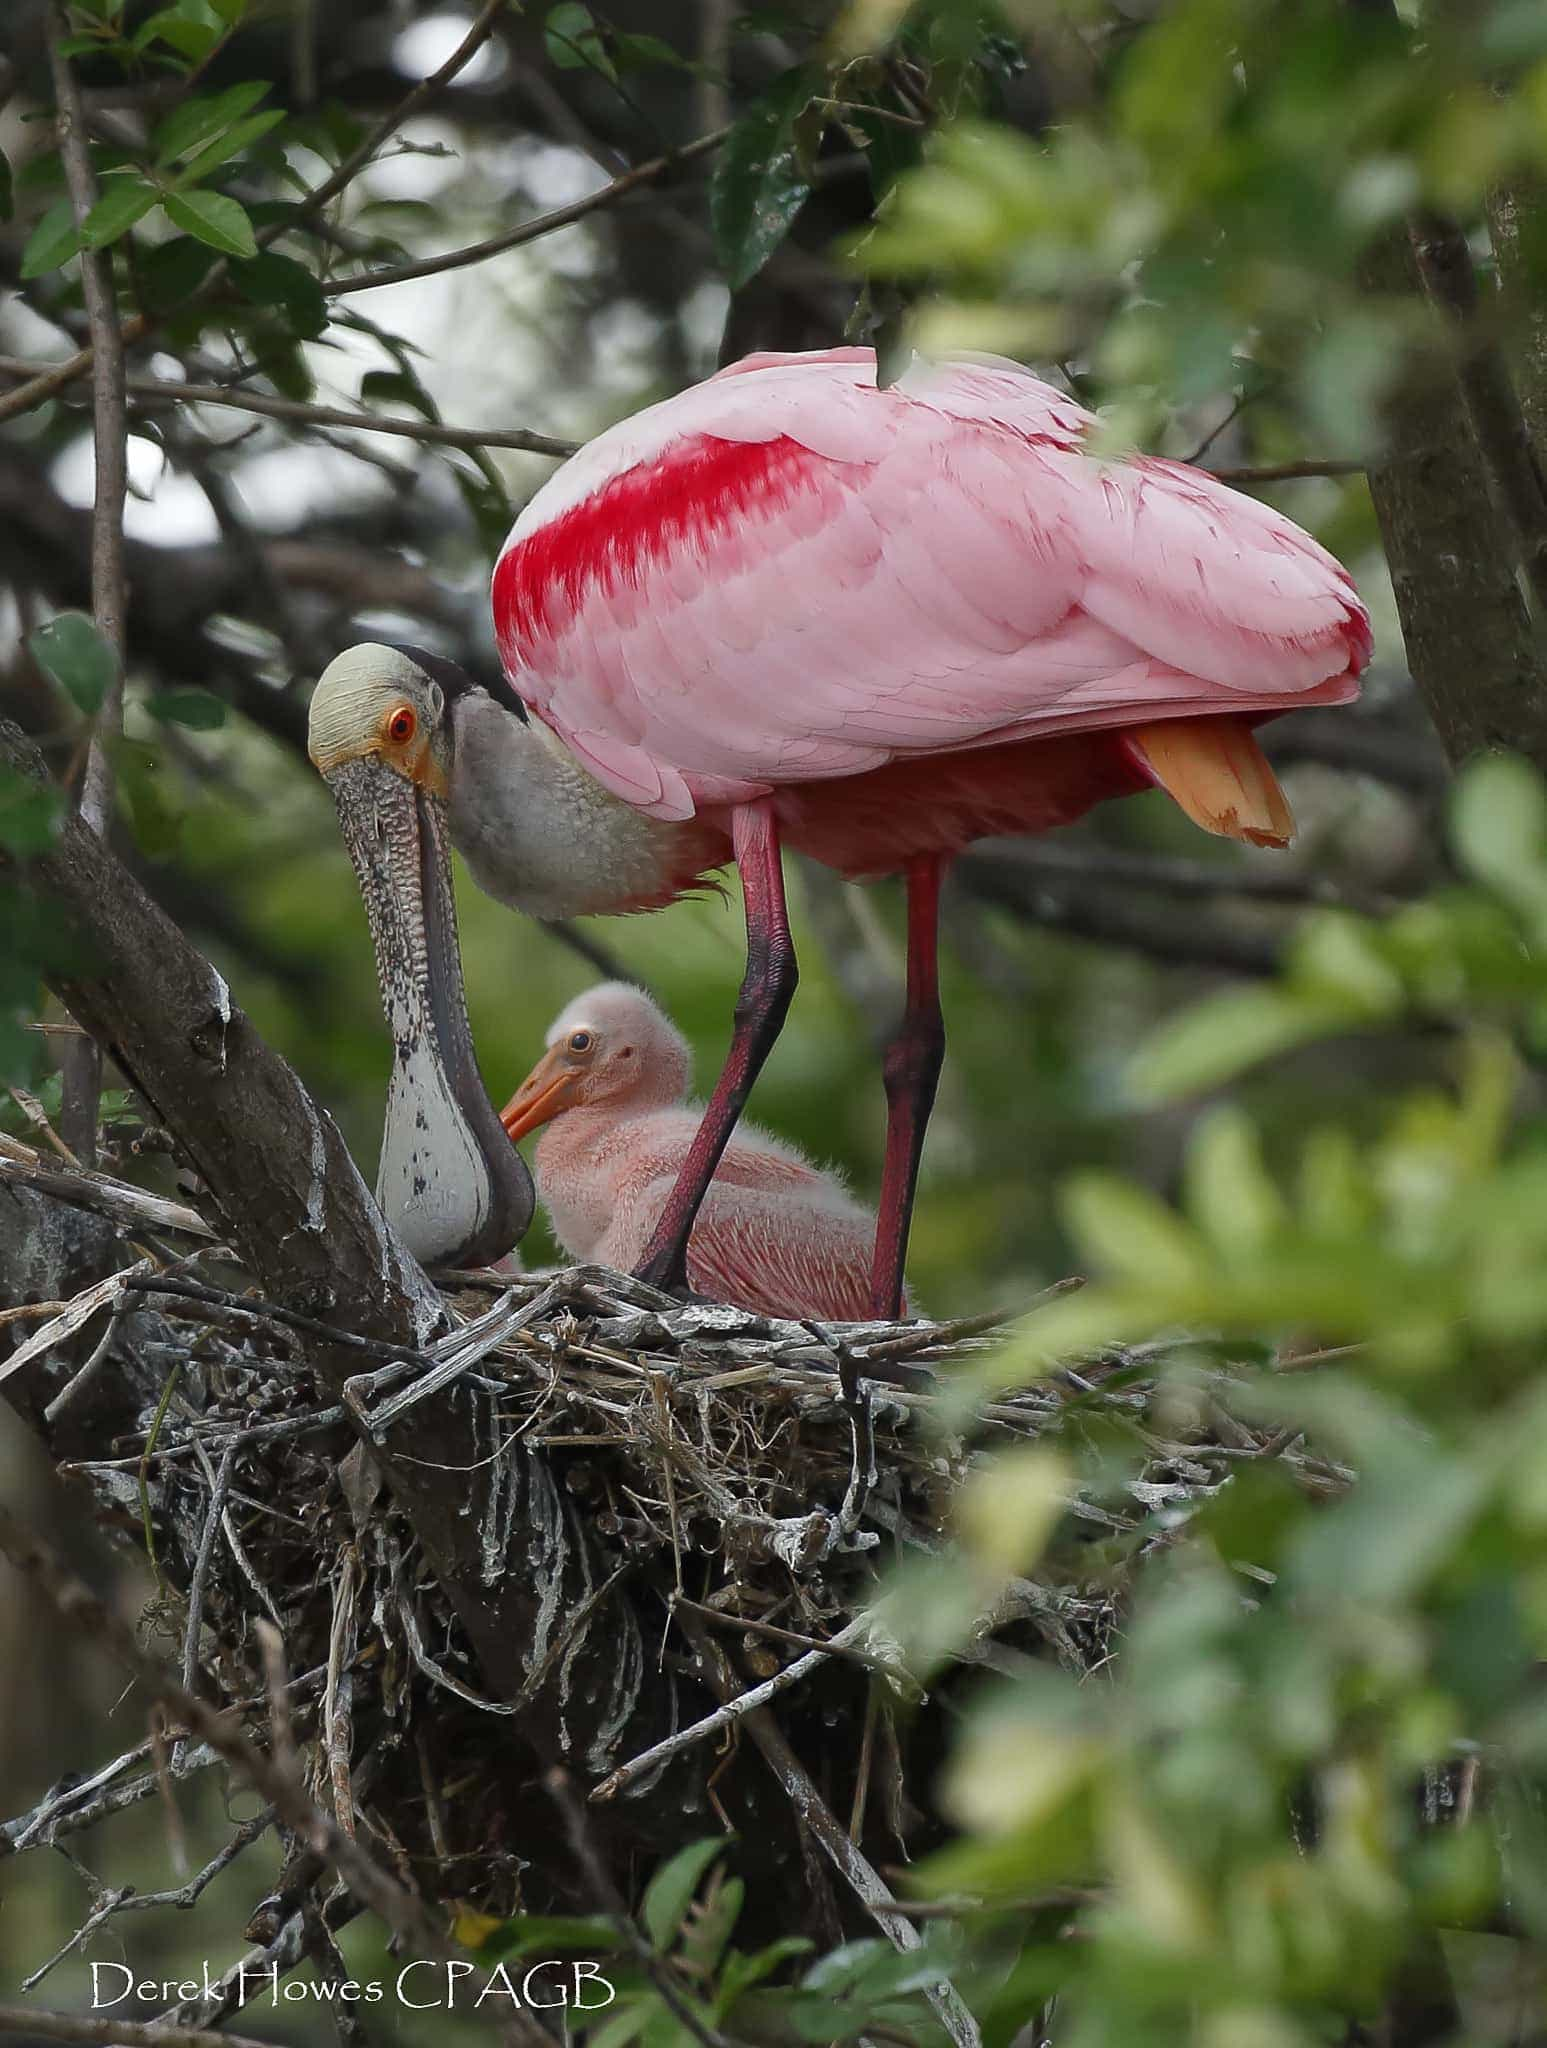 A roseate spoonbill mother tends to the nest & her chicks within - photographed on the NaturesLens Osprey Photography Holiday conducted in Florida during April 2016